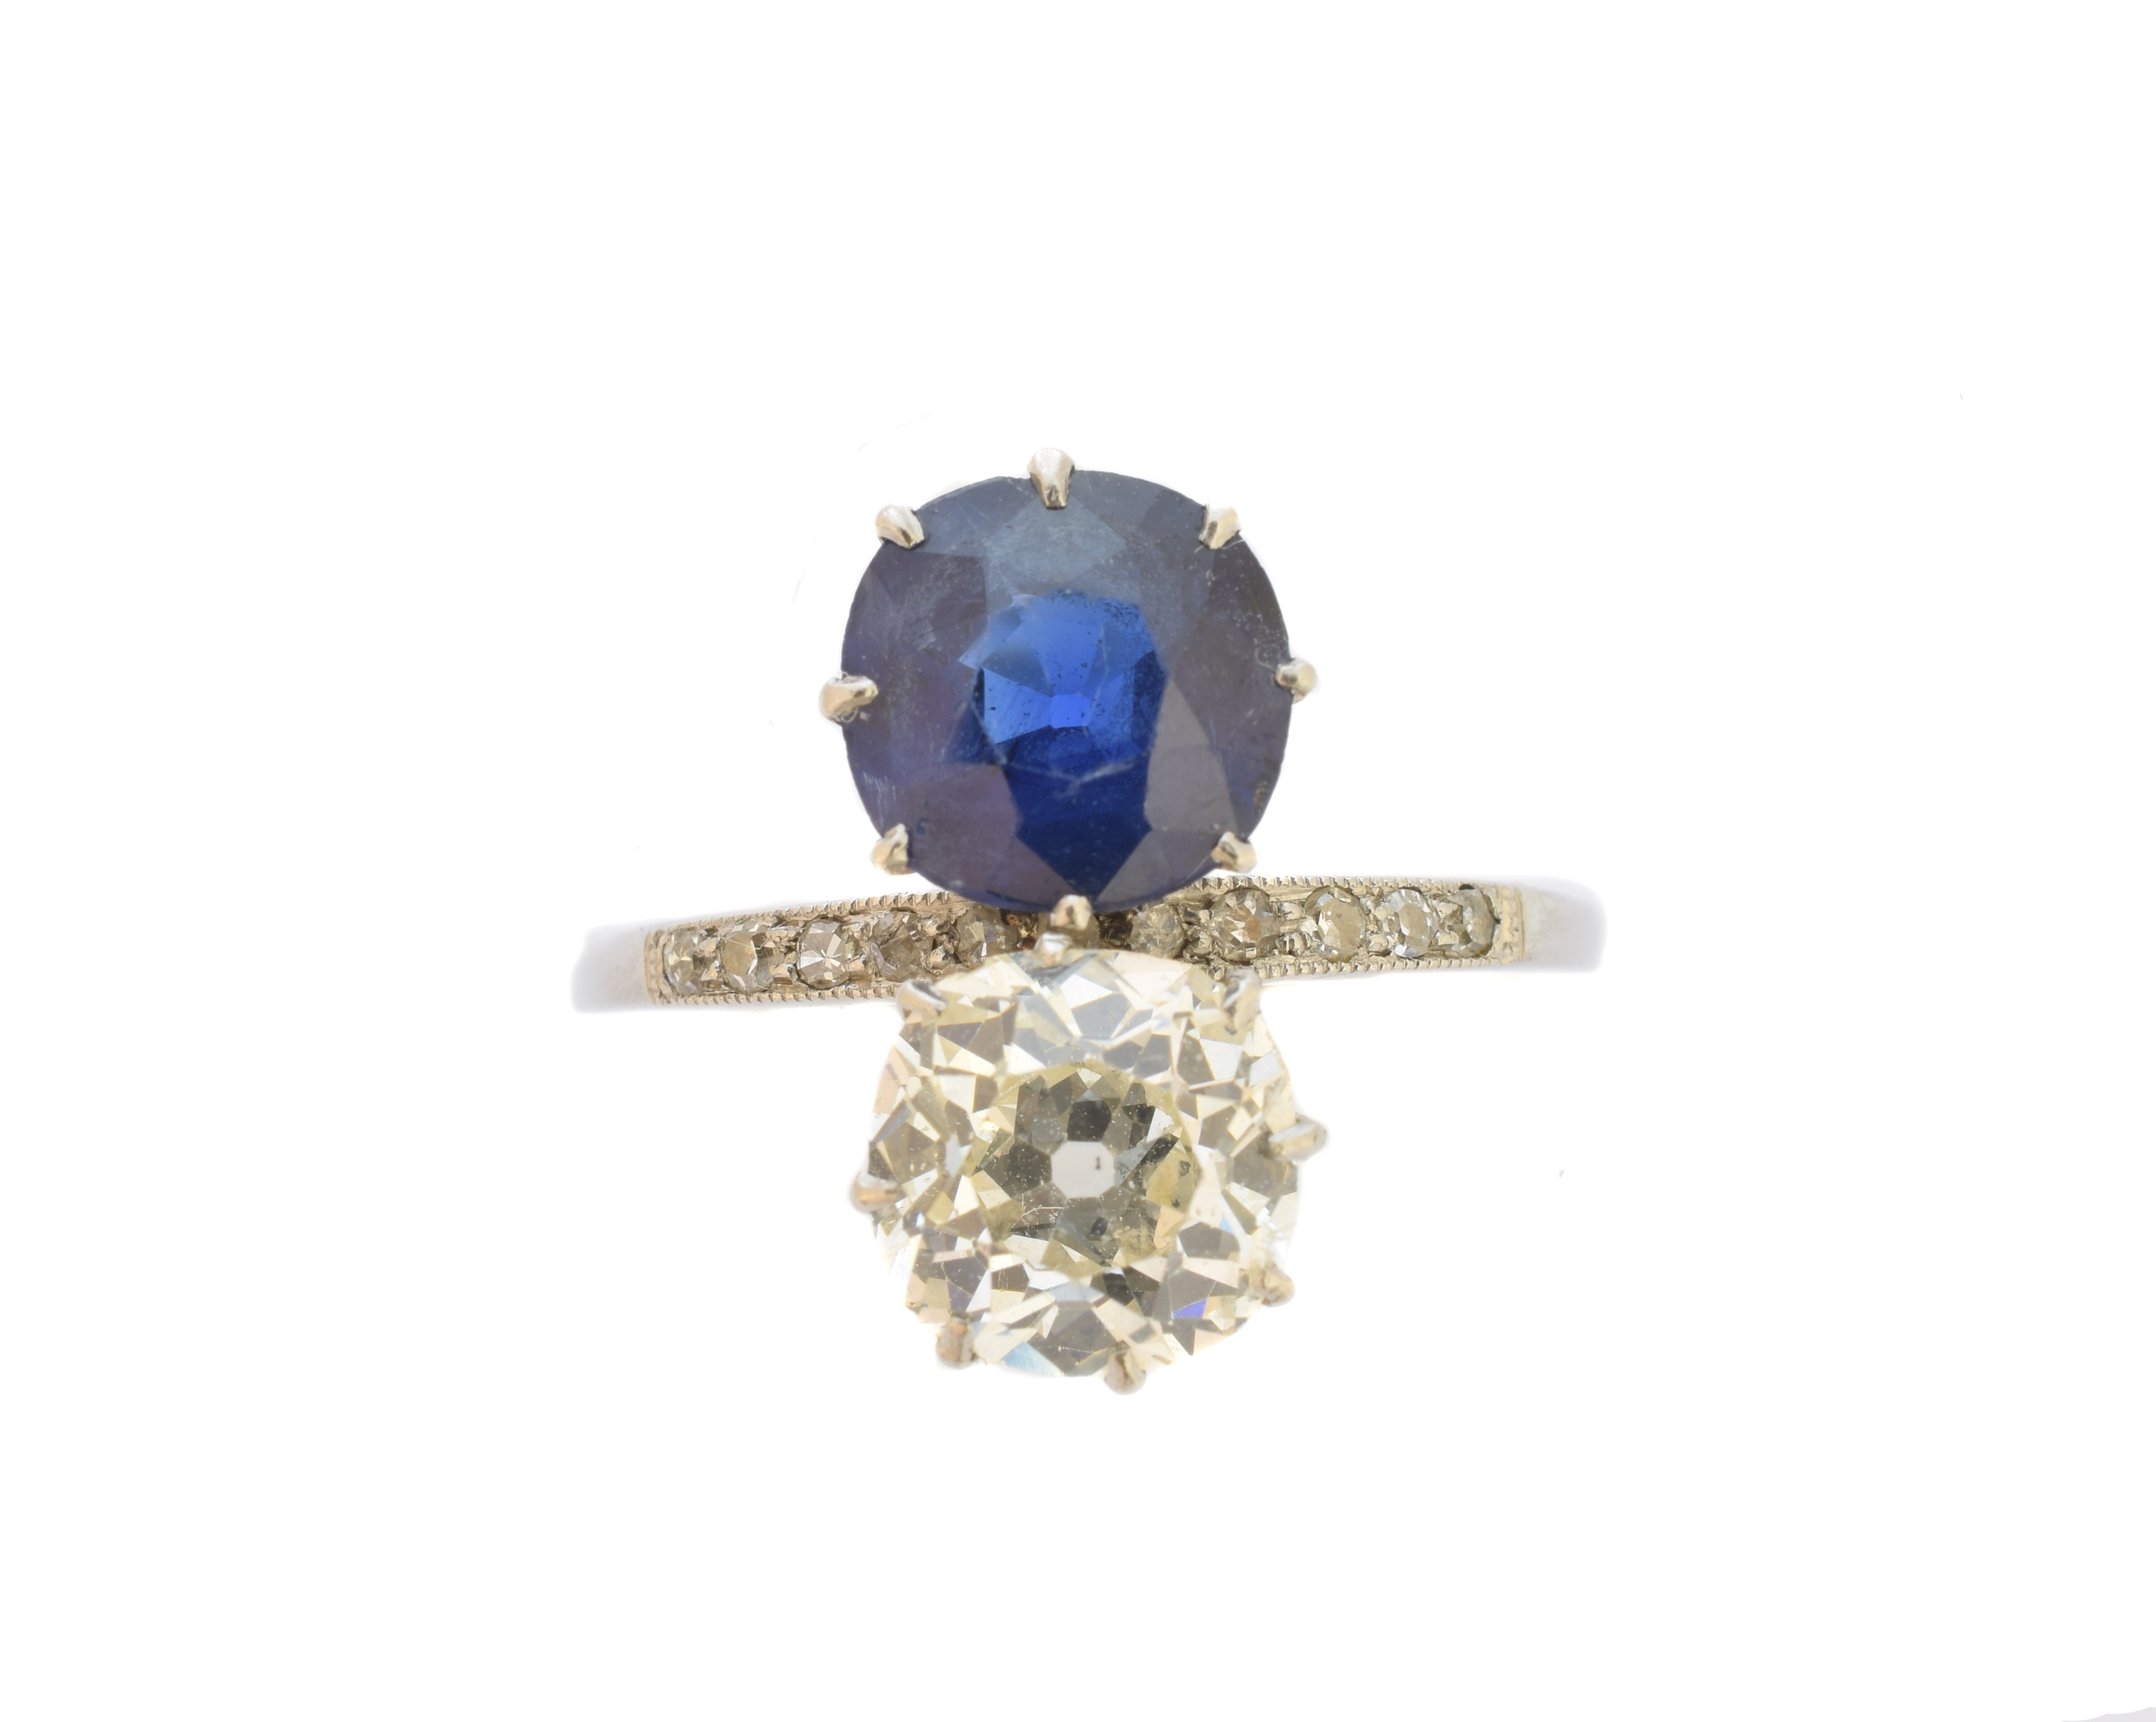 An early 20th century diamond and Basaltic sapphire toi et moi ring, sold for £3,900